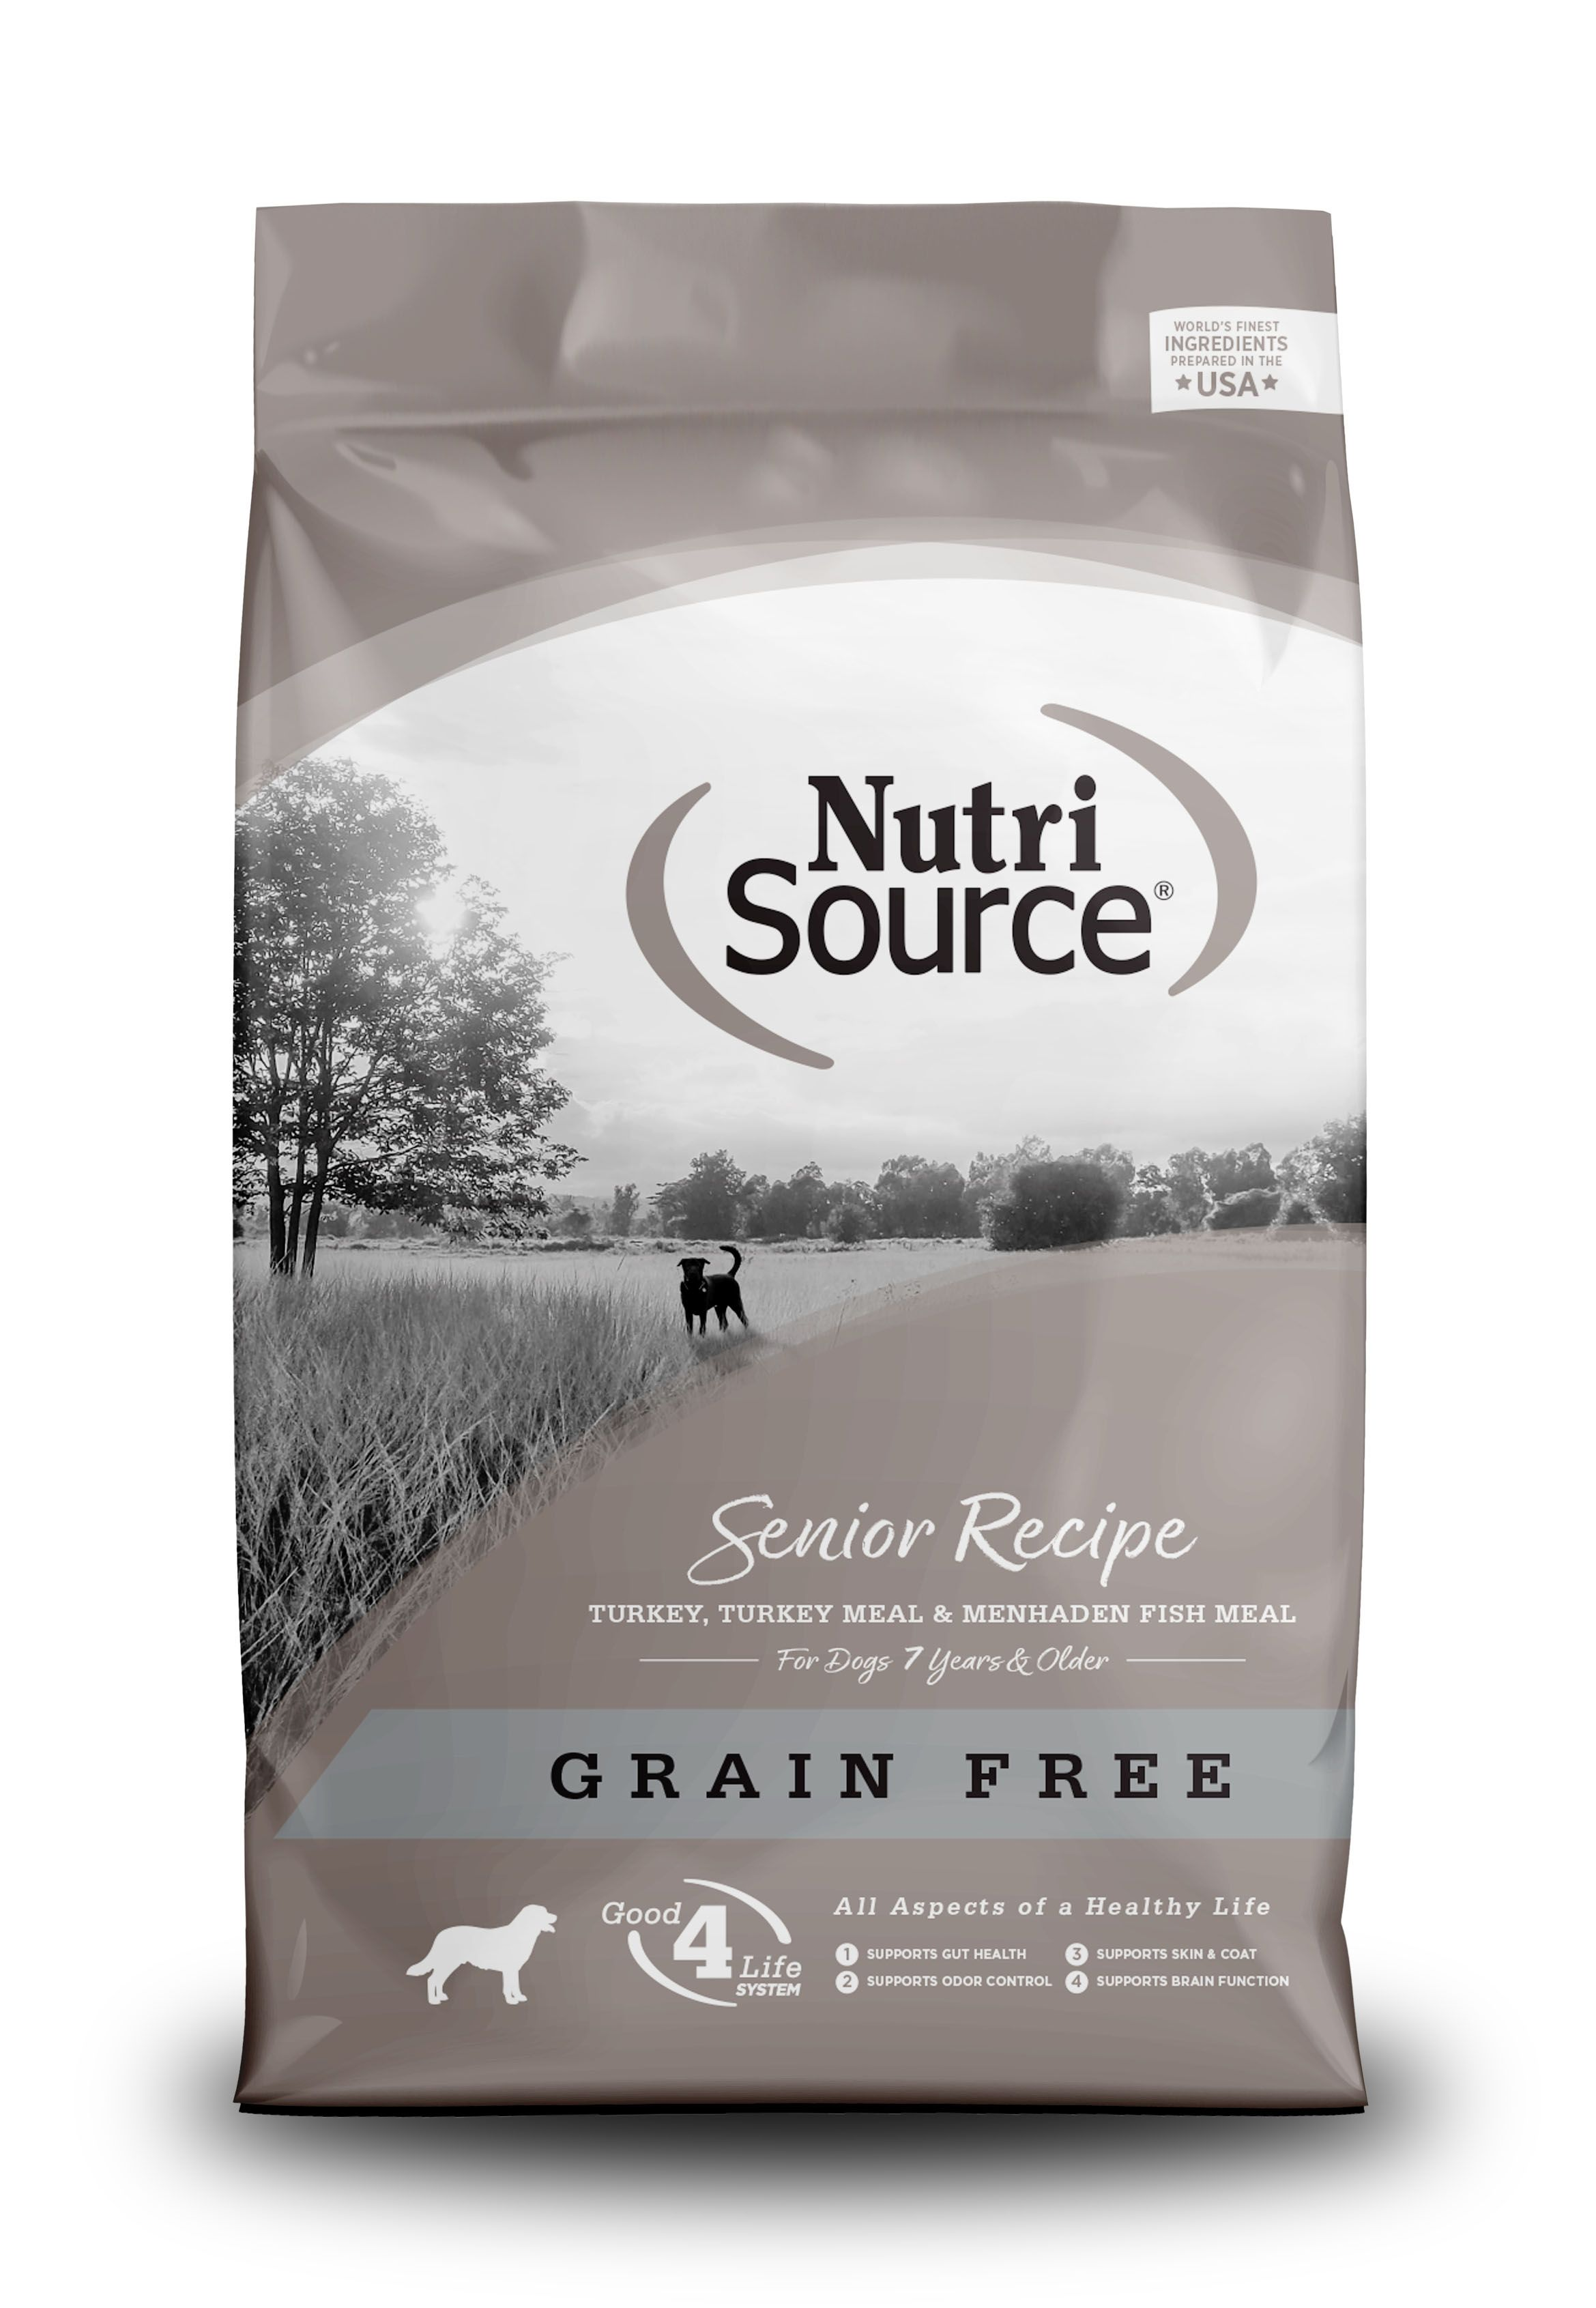 NutriSource Grain Free Senior Recipe Dry Dog Food Image